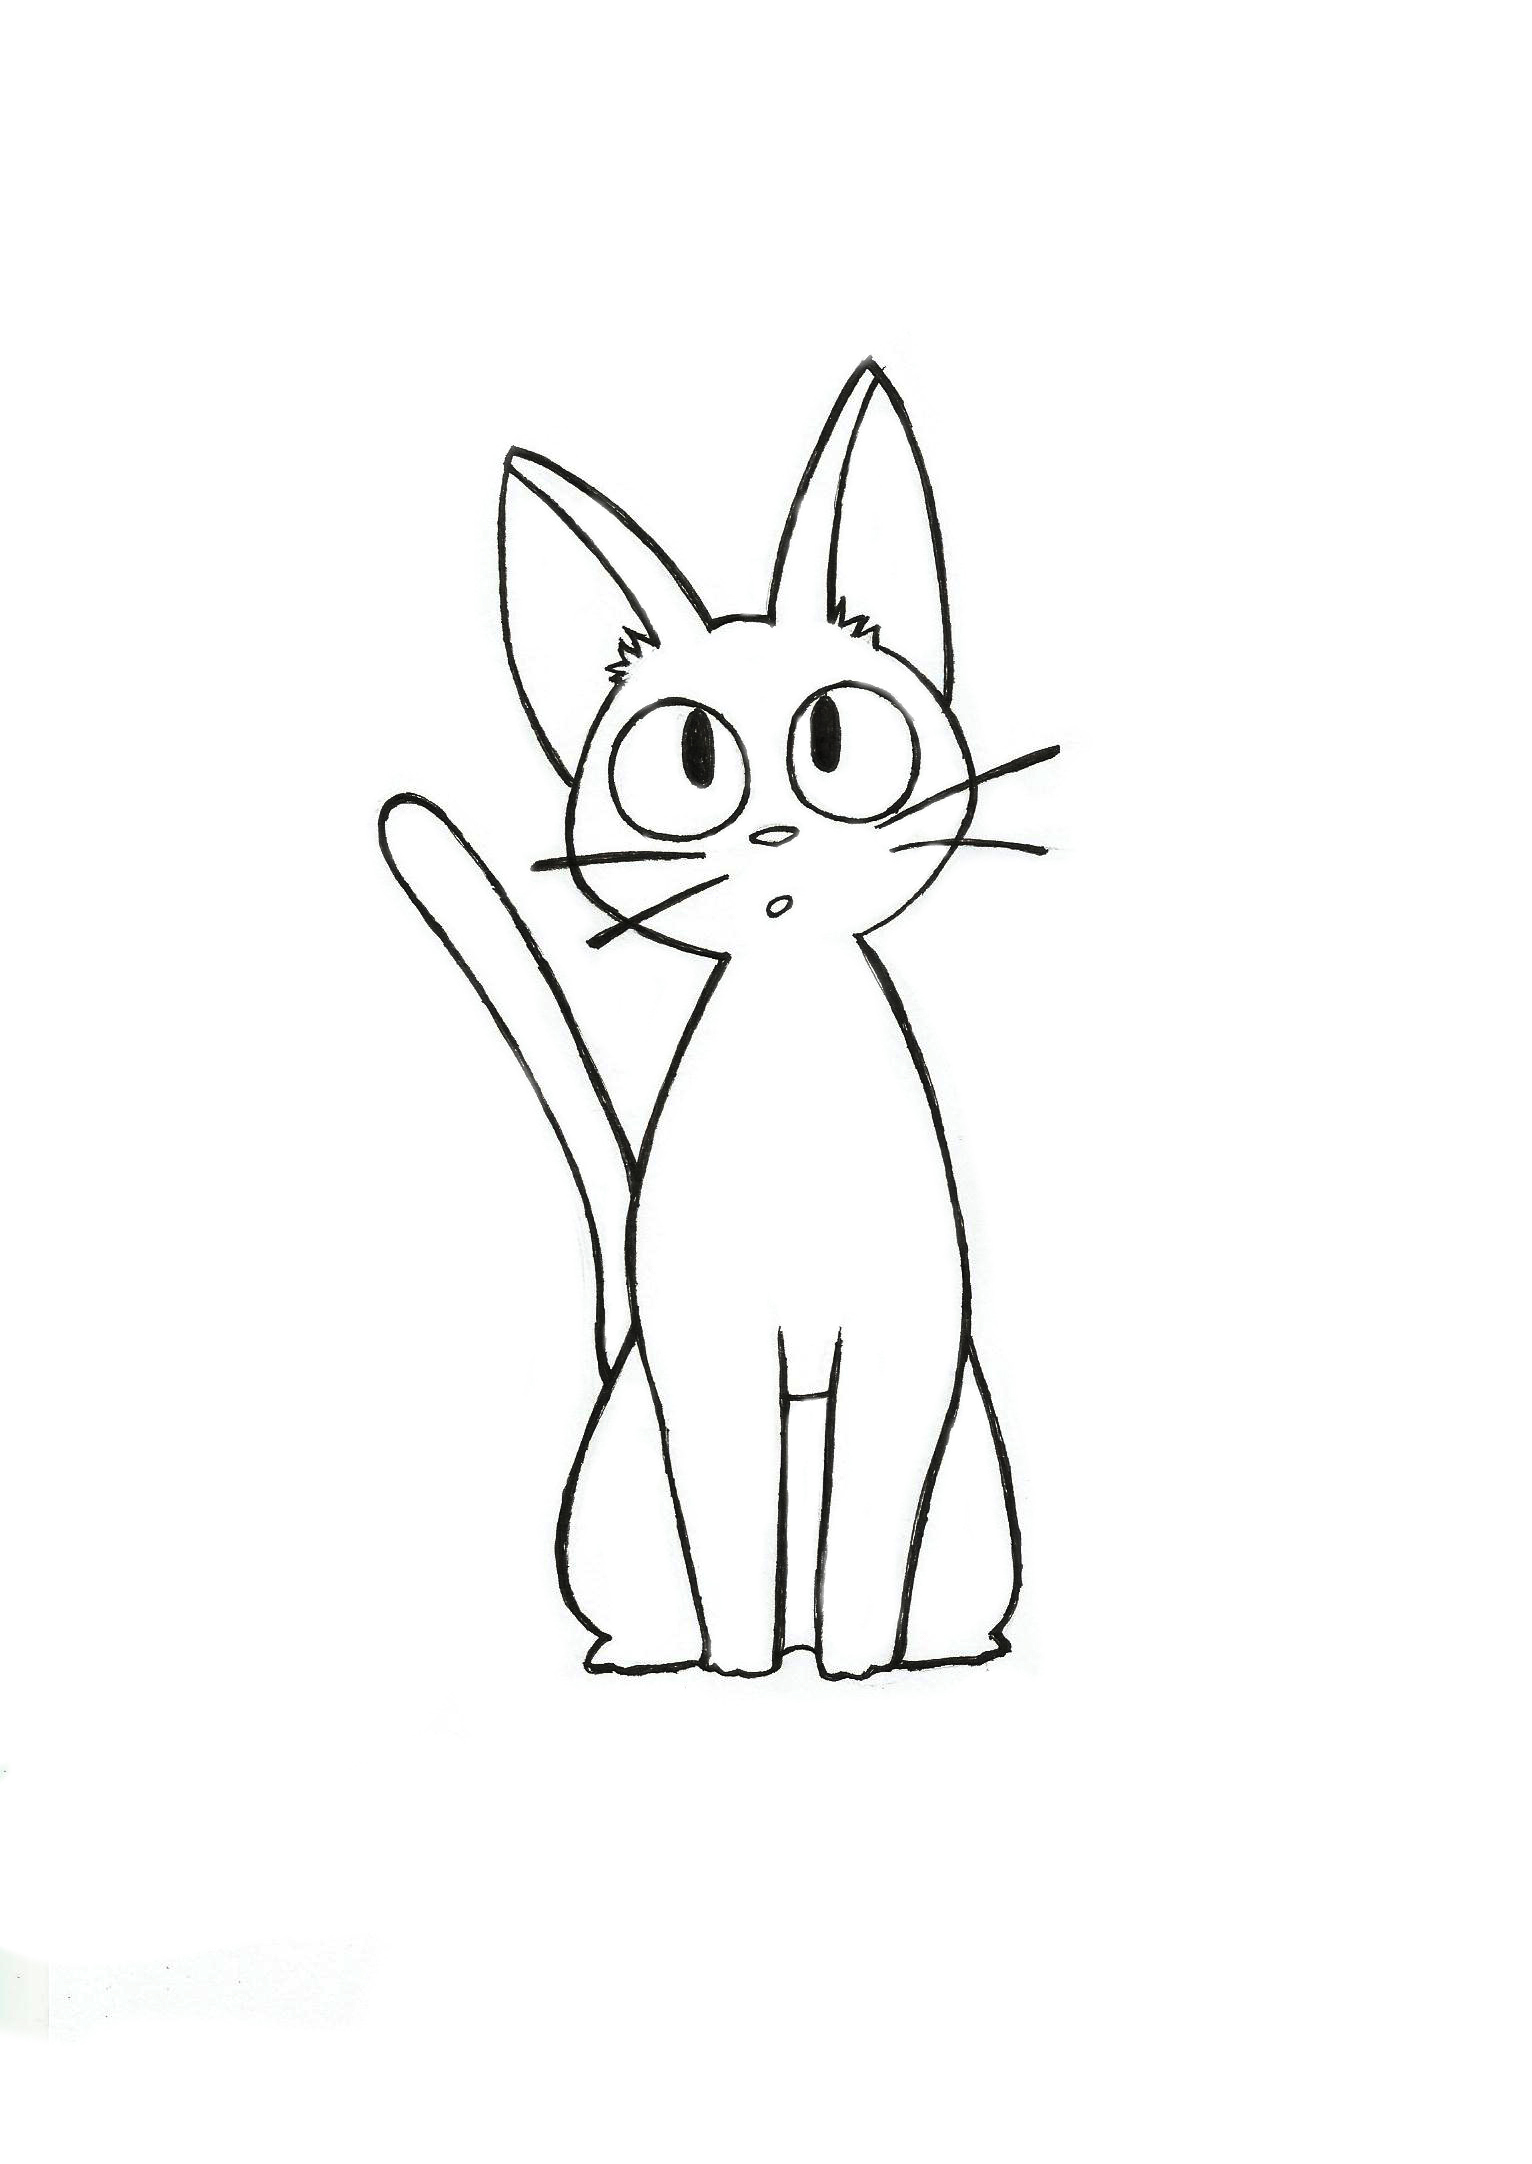 Jiji kiki 39 s delivery service weasyl for Kiki s delivery service coloring pages